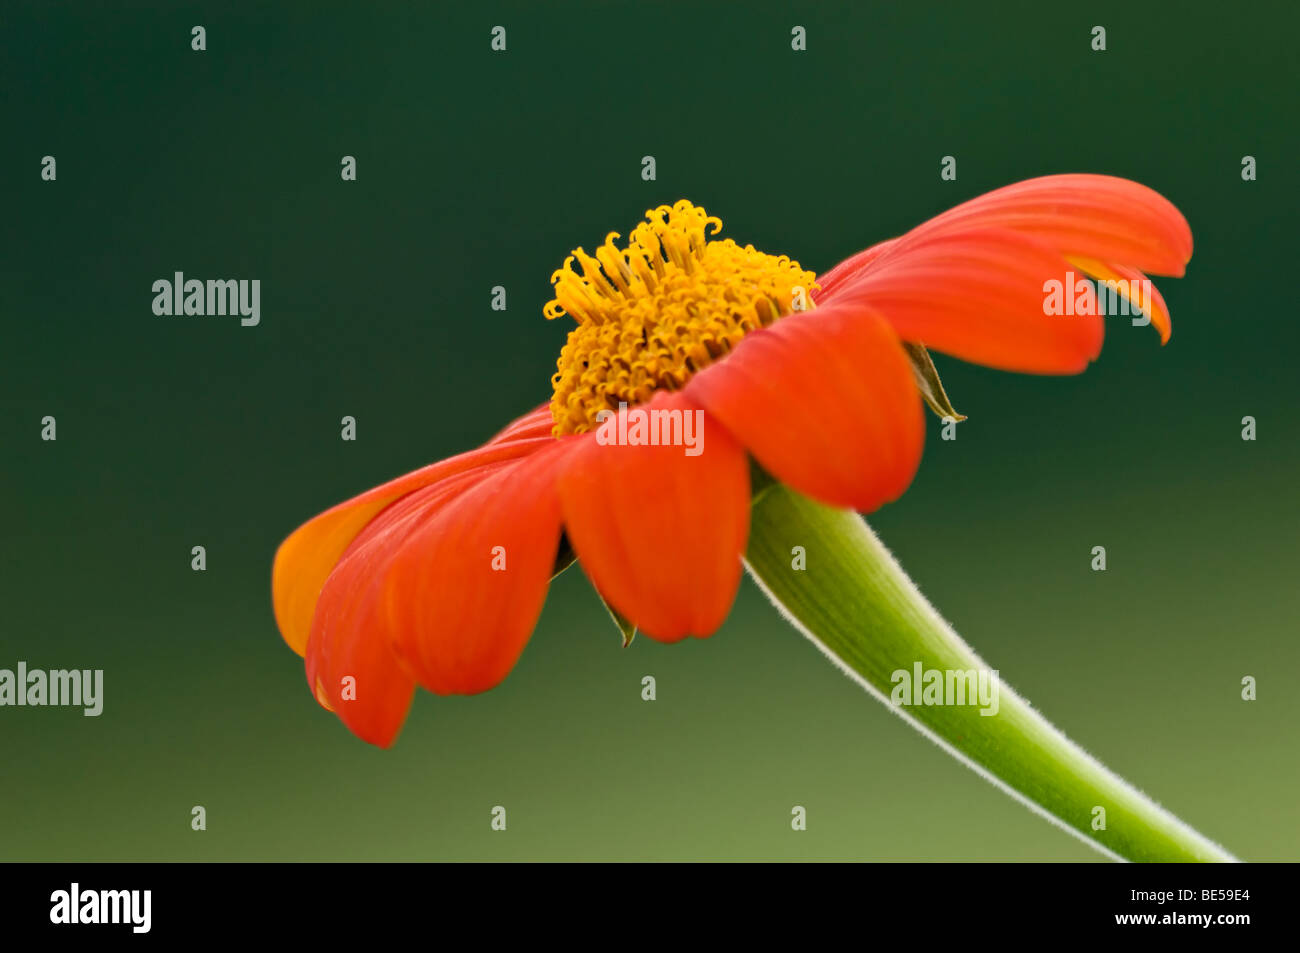 Mexican Sunflower Blossom - Stock Image